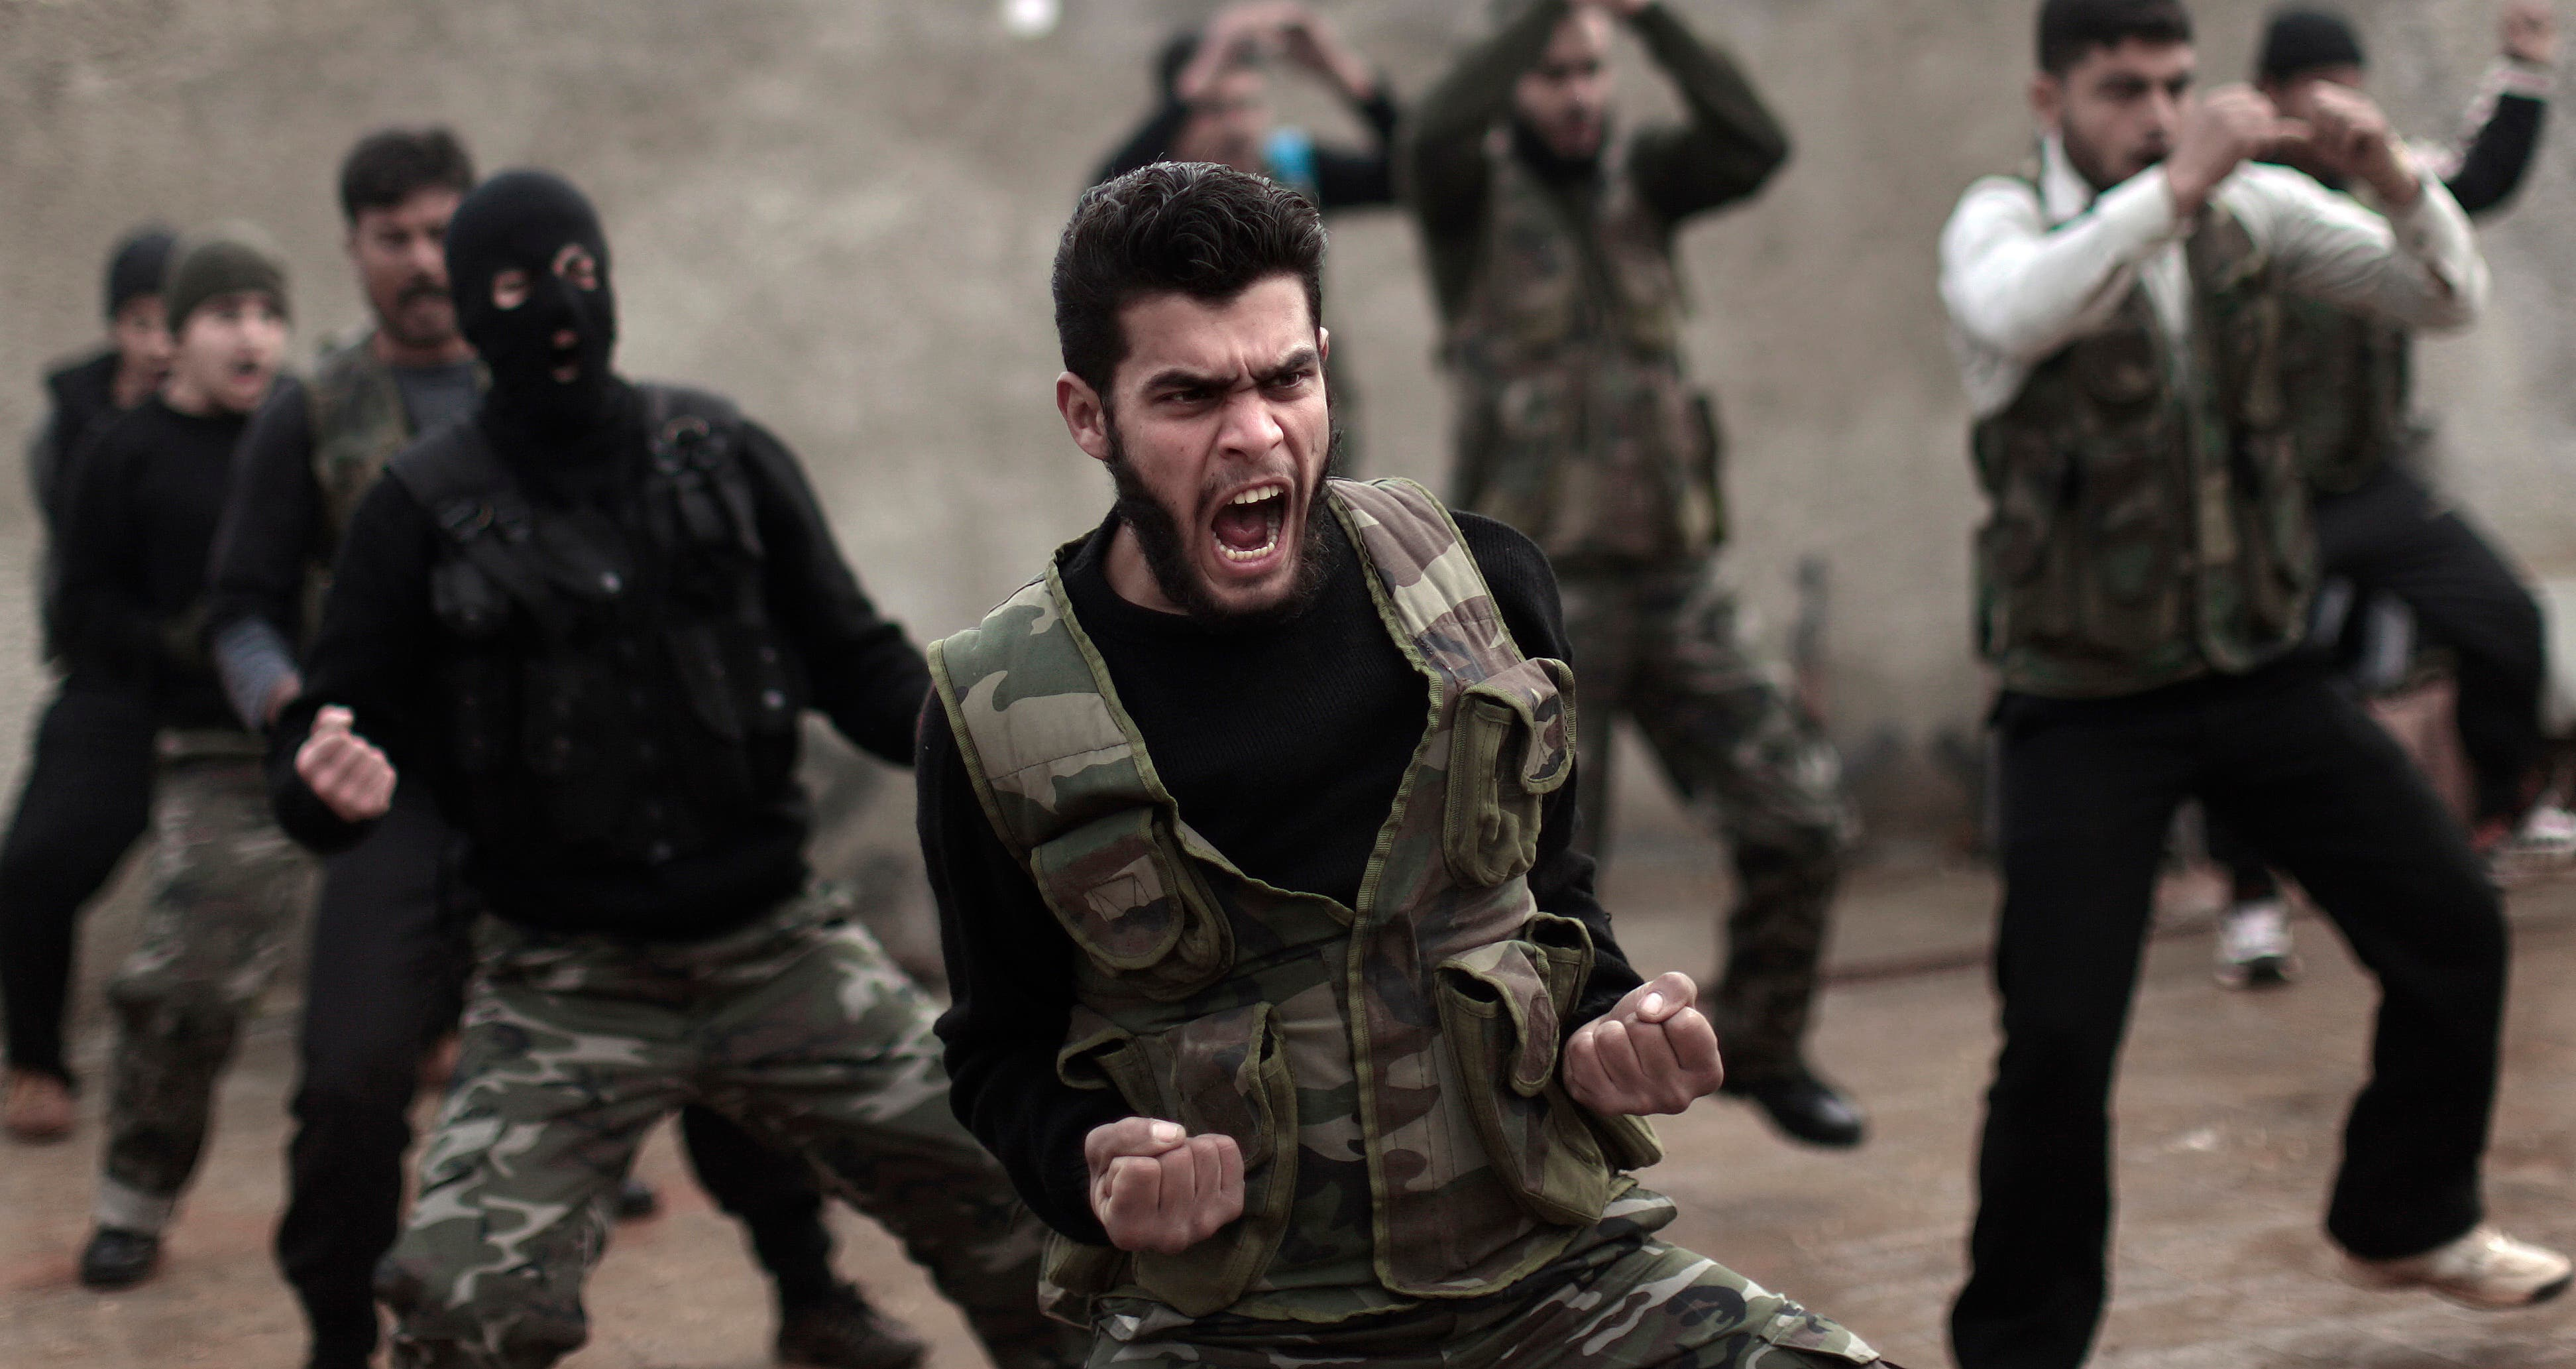 Syrian rebels attend a training session in Maaret Ikhwan near Idlib, Syria. Fewer than 100 Syrian rebels are currently being trained by the U.S. military. AP